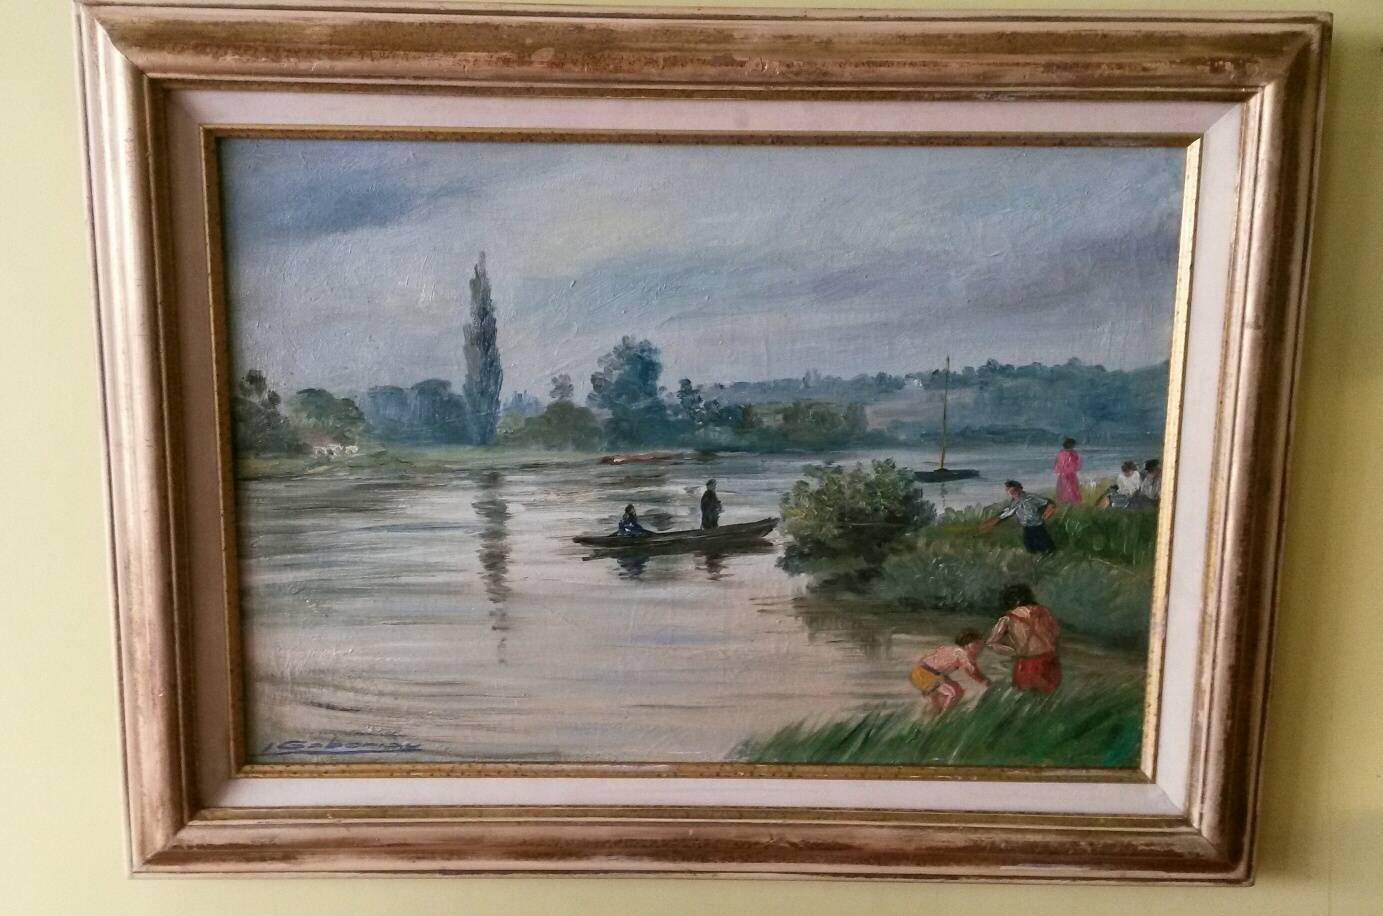 French Post Impressionist Seine River Landscape Painting by Gaboriau